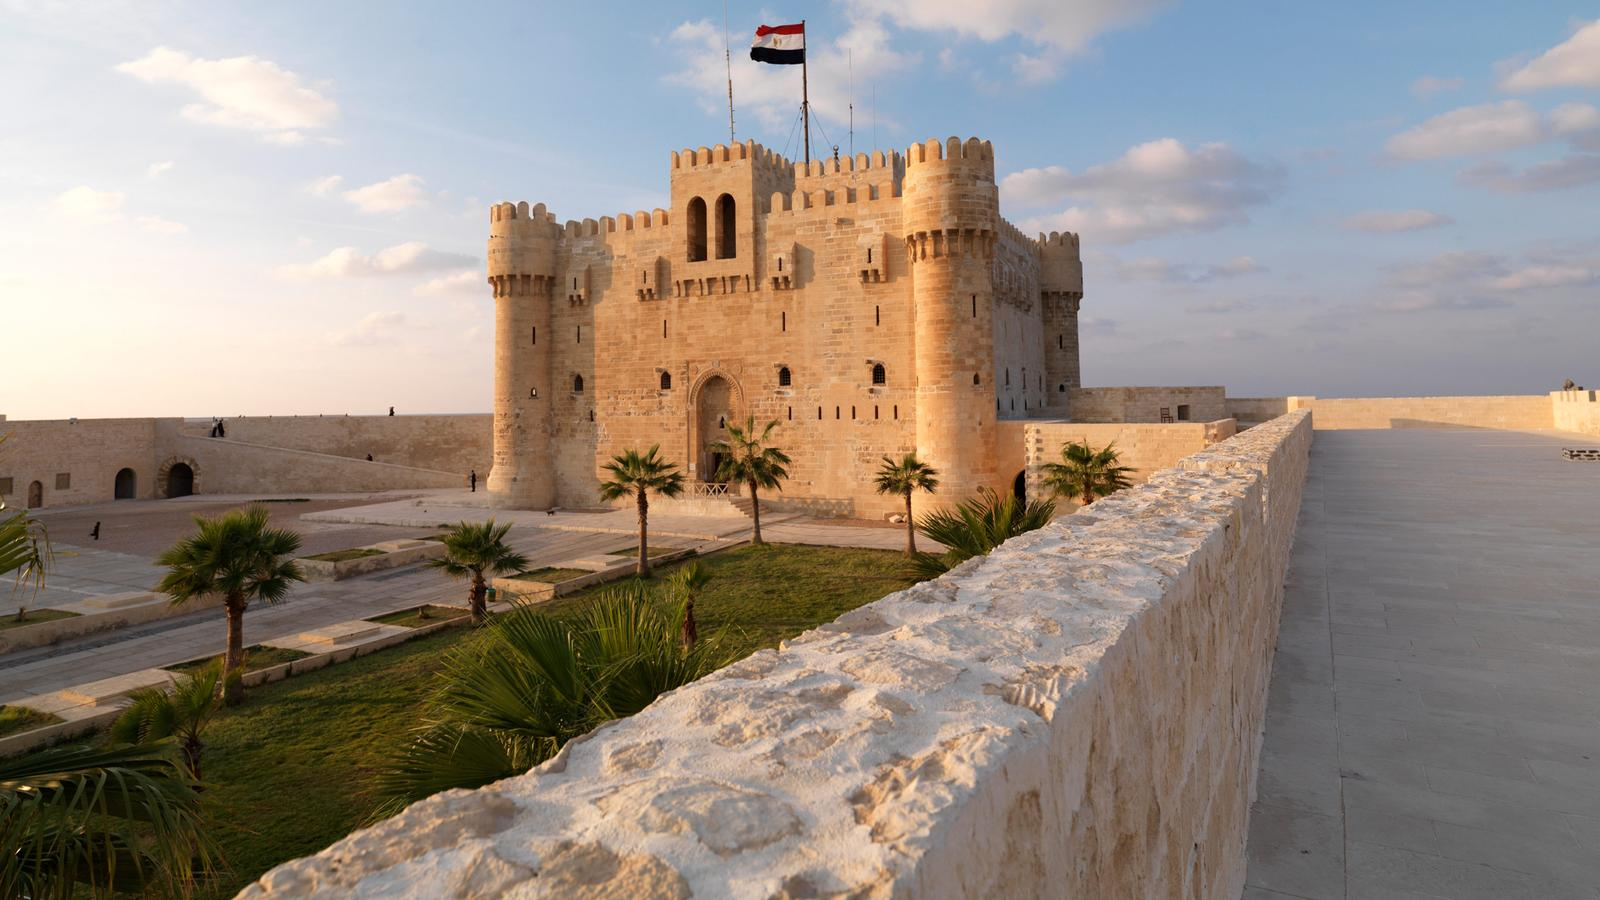 alexandria independent adventure in egypt north africa middle